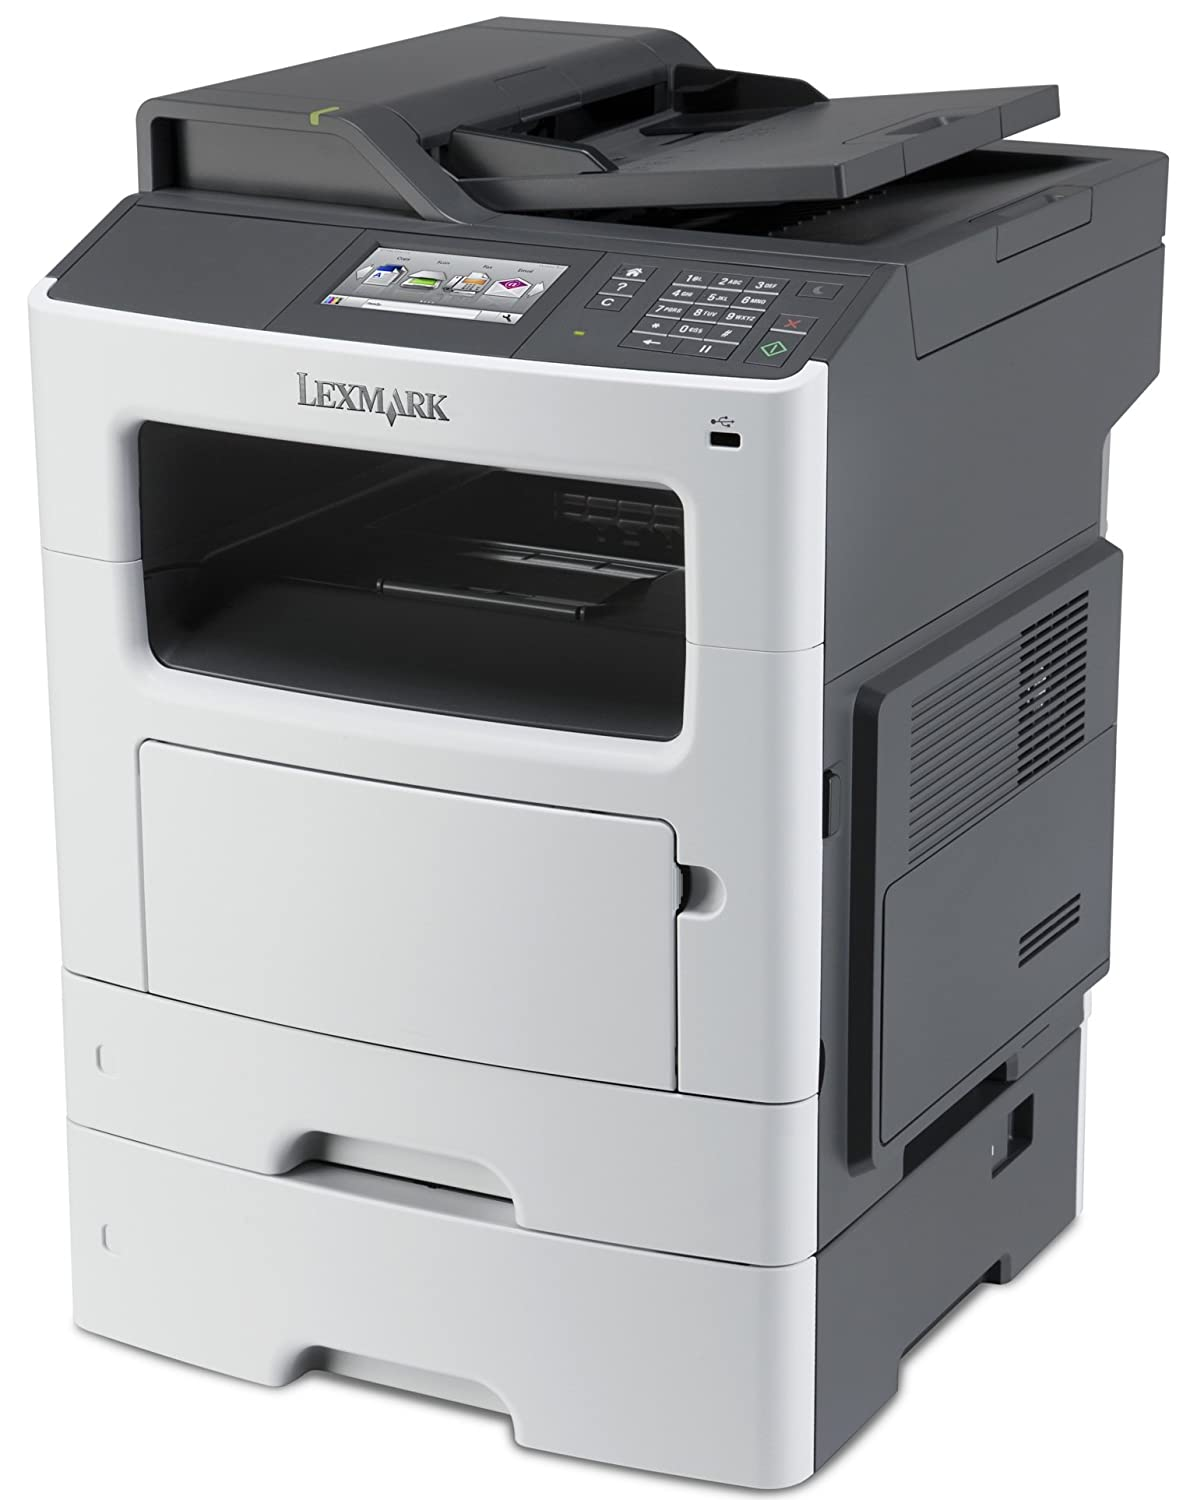 wedding card printing malaysiprice%0A Amazon com  Lexmark MX   dn Compact AllIn One Monochrome Laser Printer   Network Ready  Scan  Copy  Duplex Printing and Professional Features   Electronics